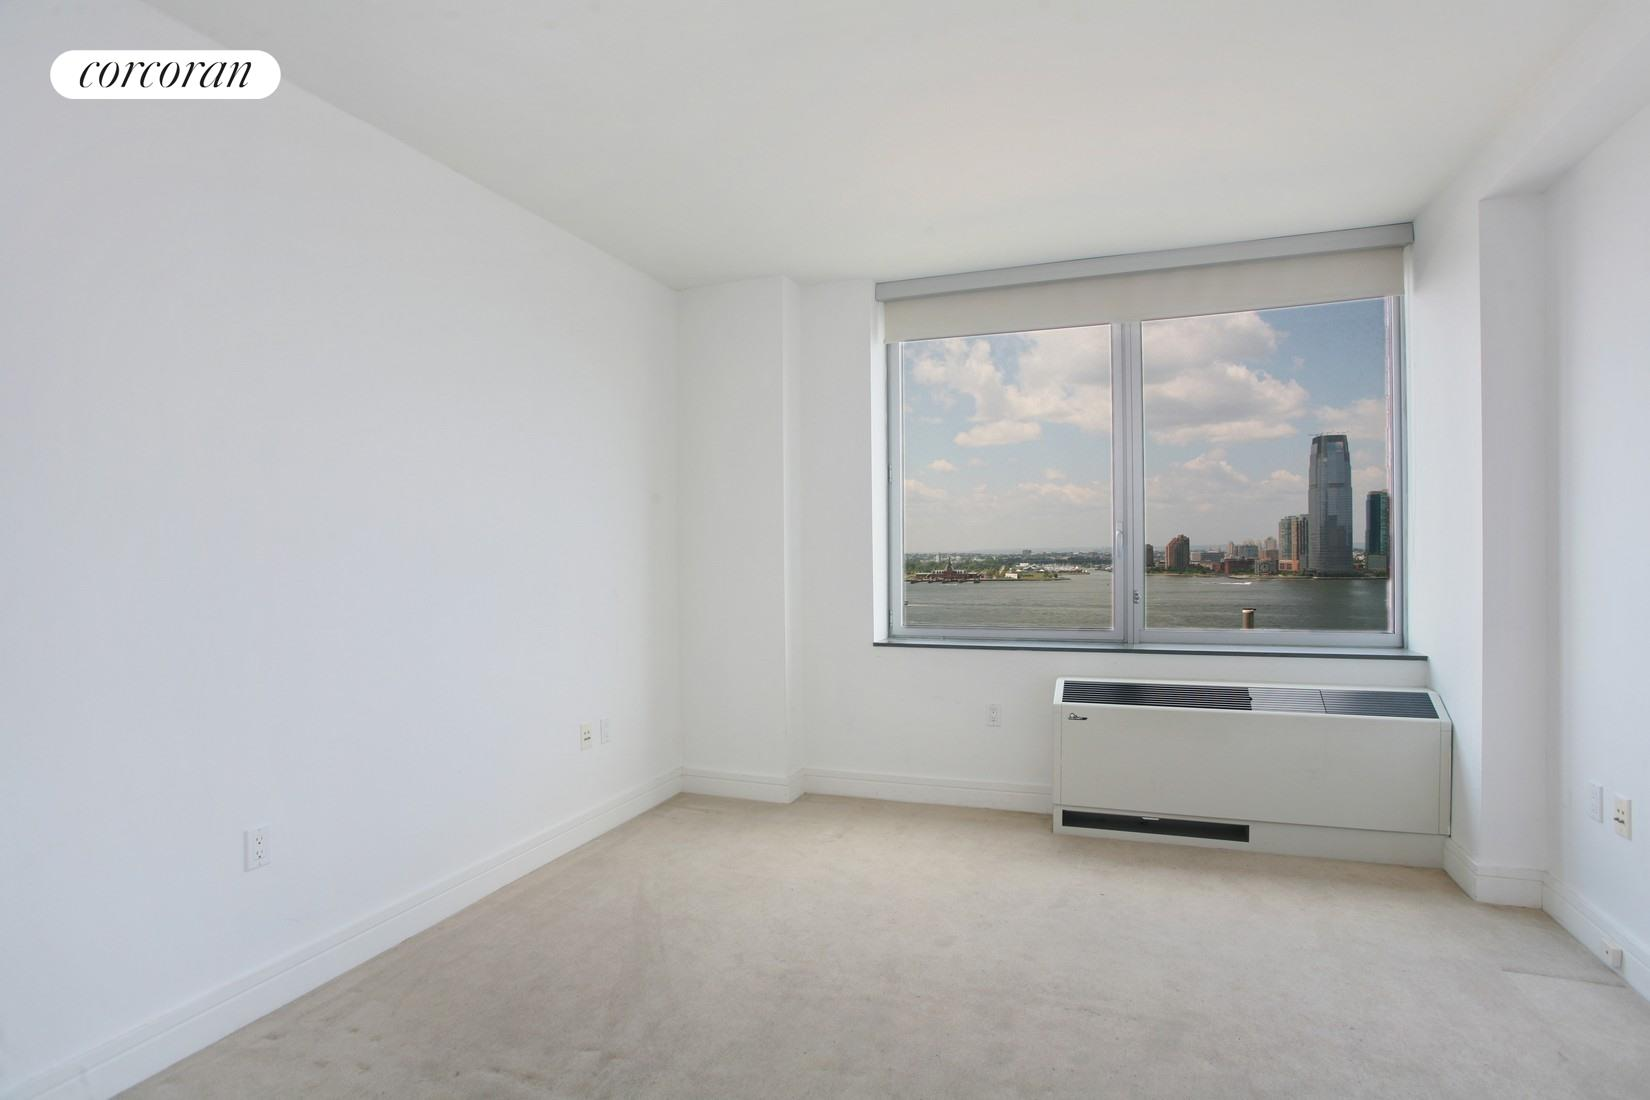 30 West Street, 16G, Living Room with River Views